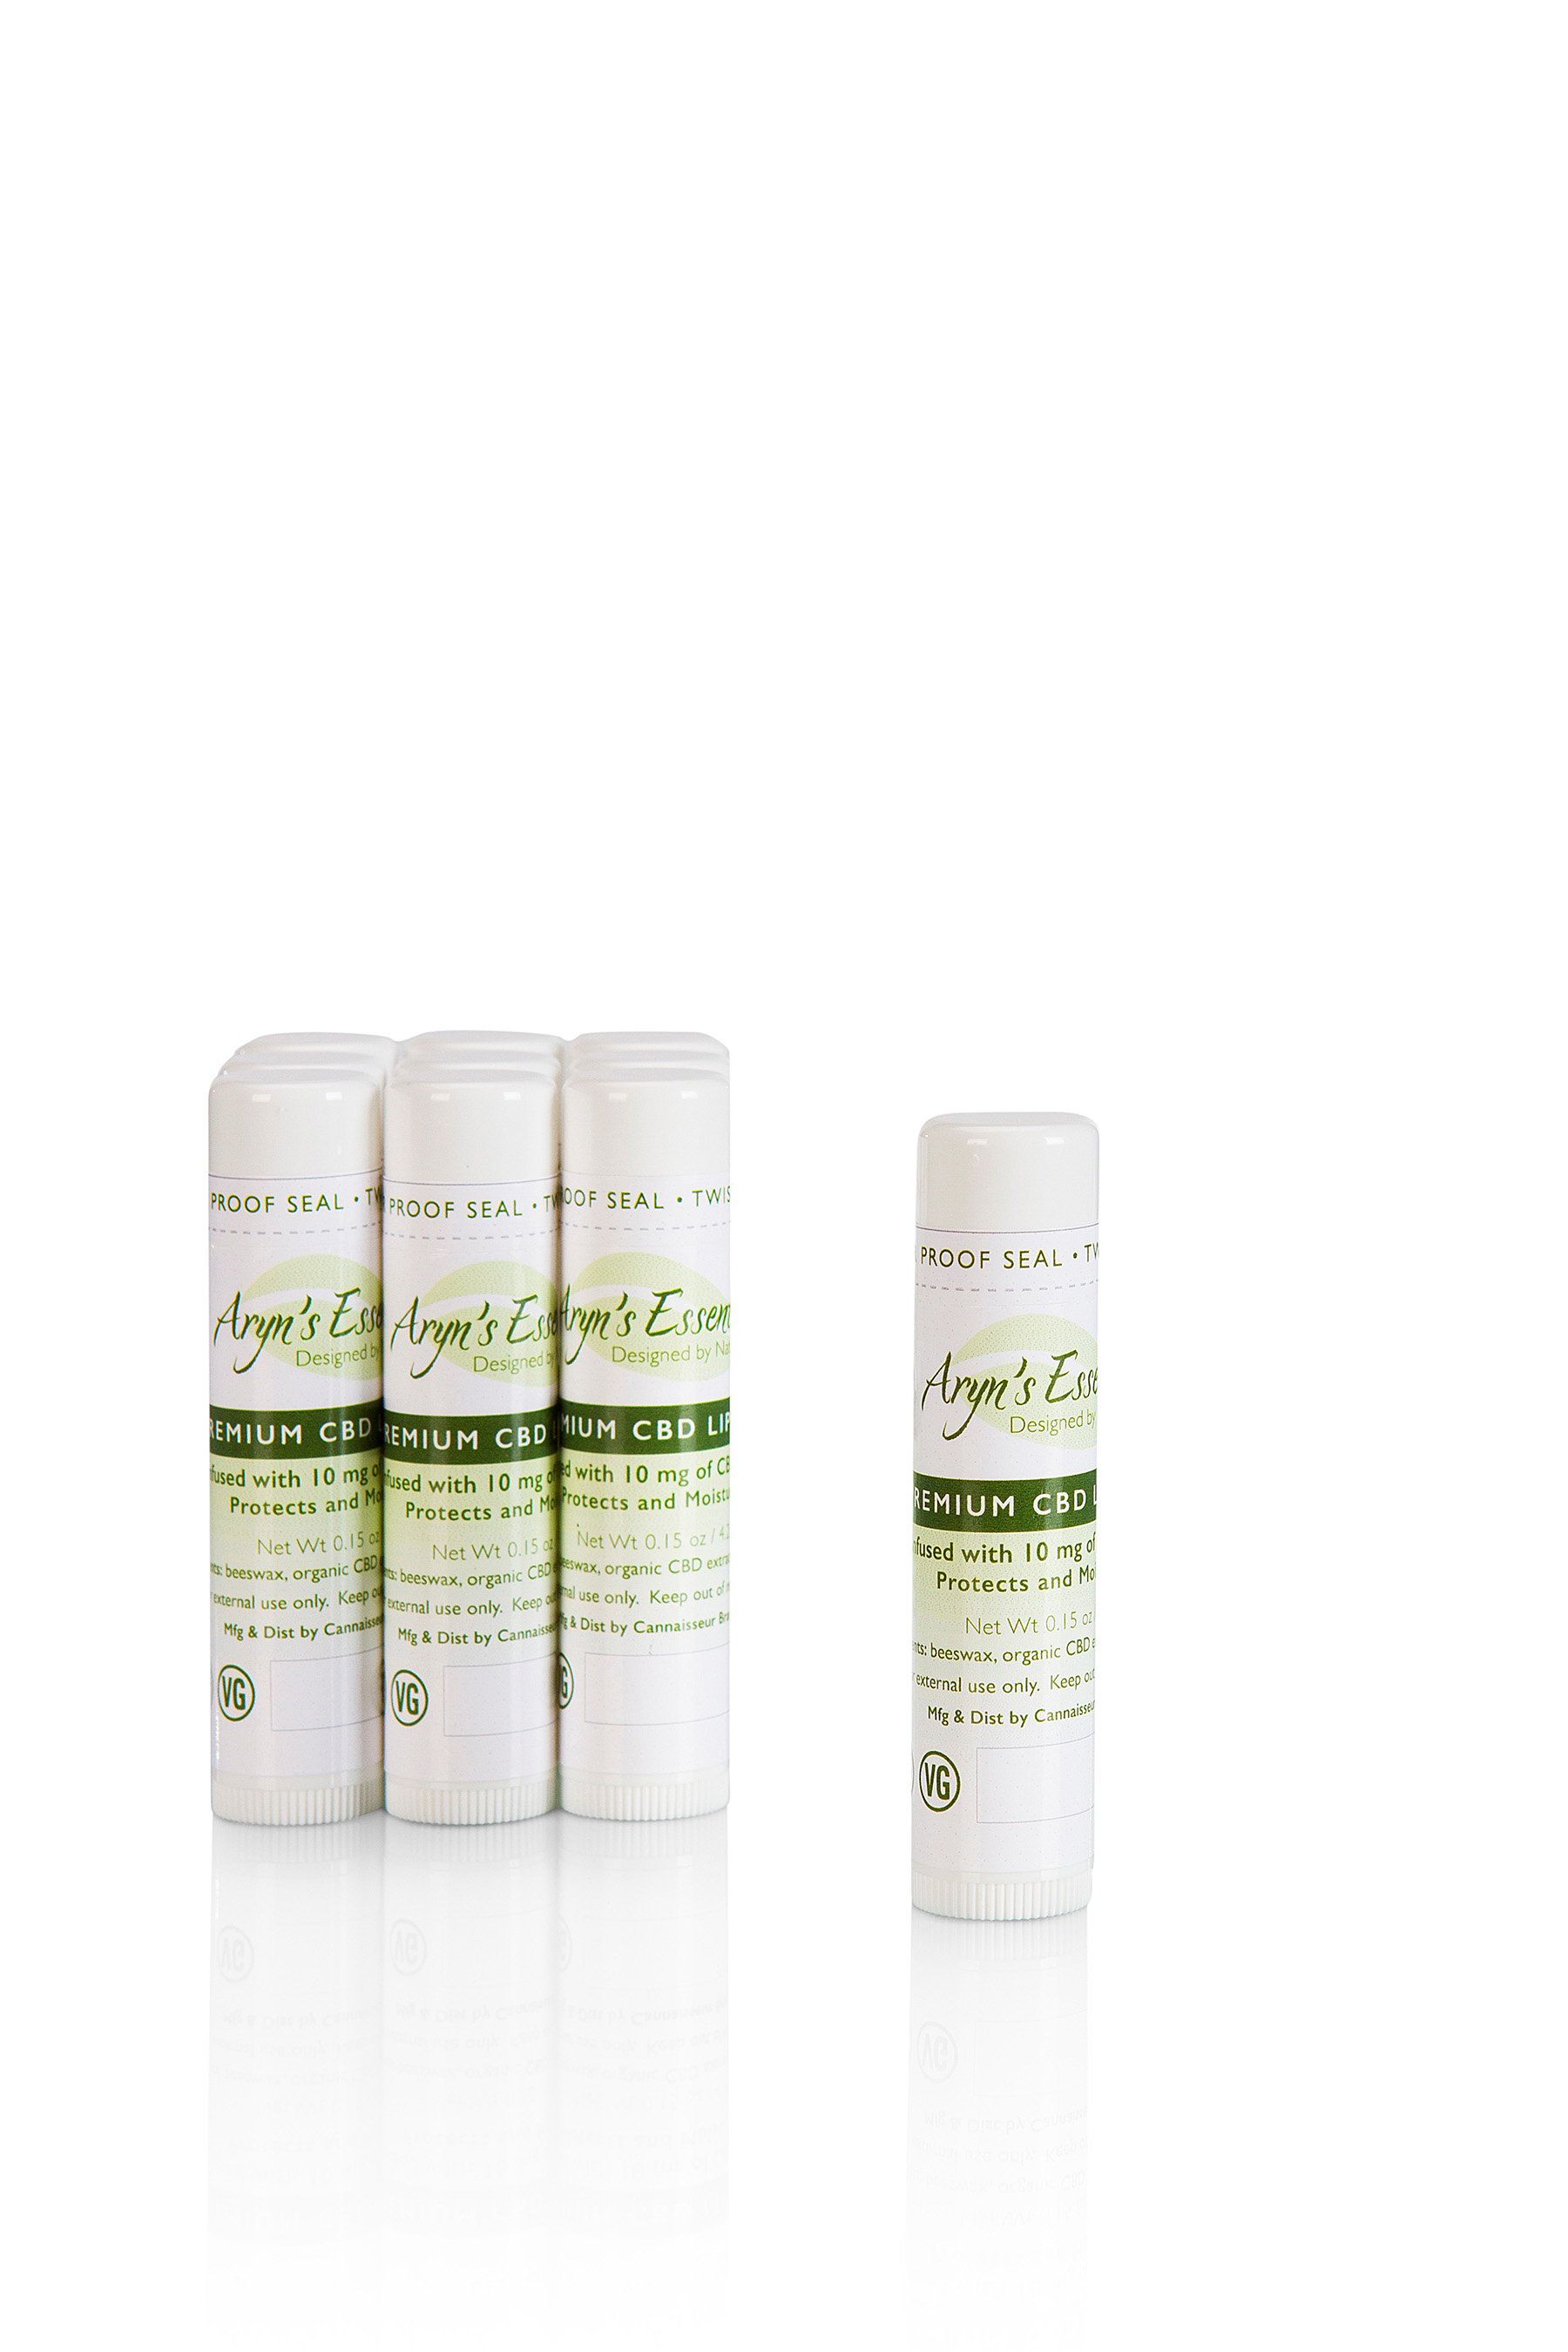 Cannaisseur Brands Launches Aryn's Essentials, Cannabis Topicals: THERAPY Designed by Nature!